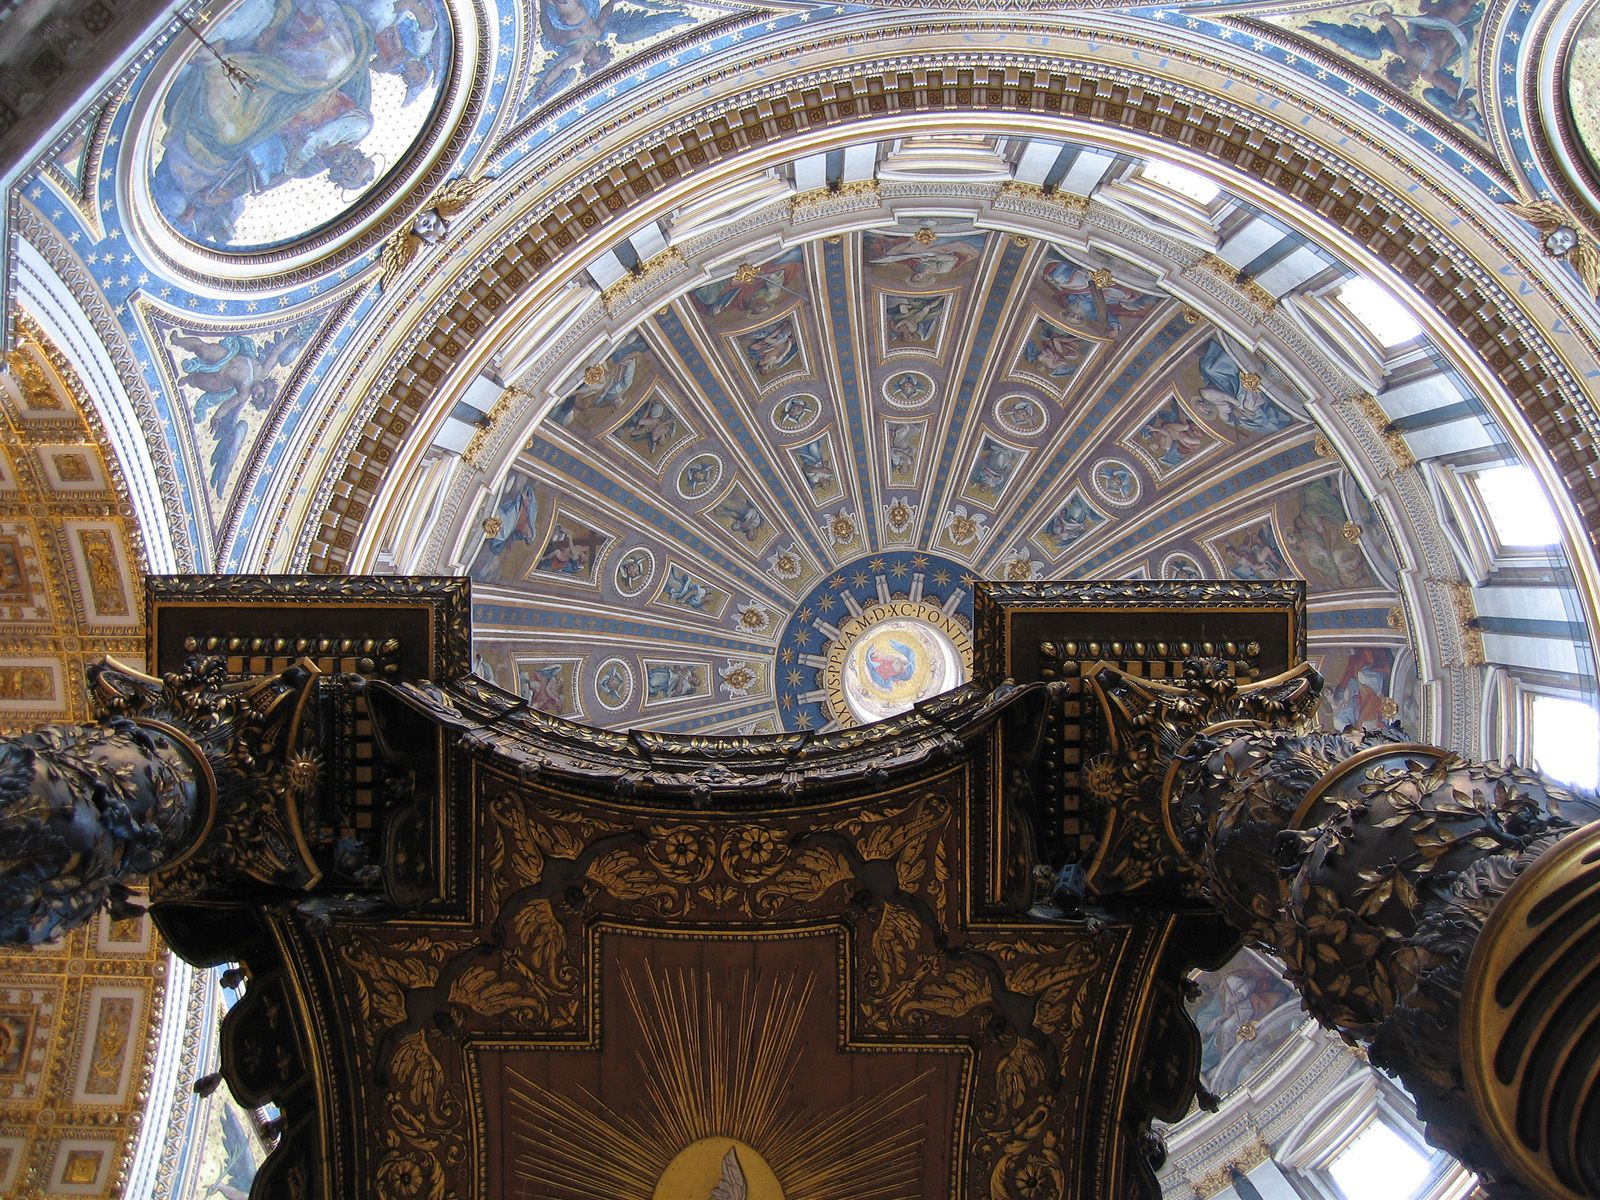 saint peter's basilica cathedral roof